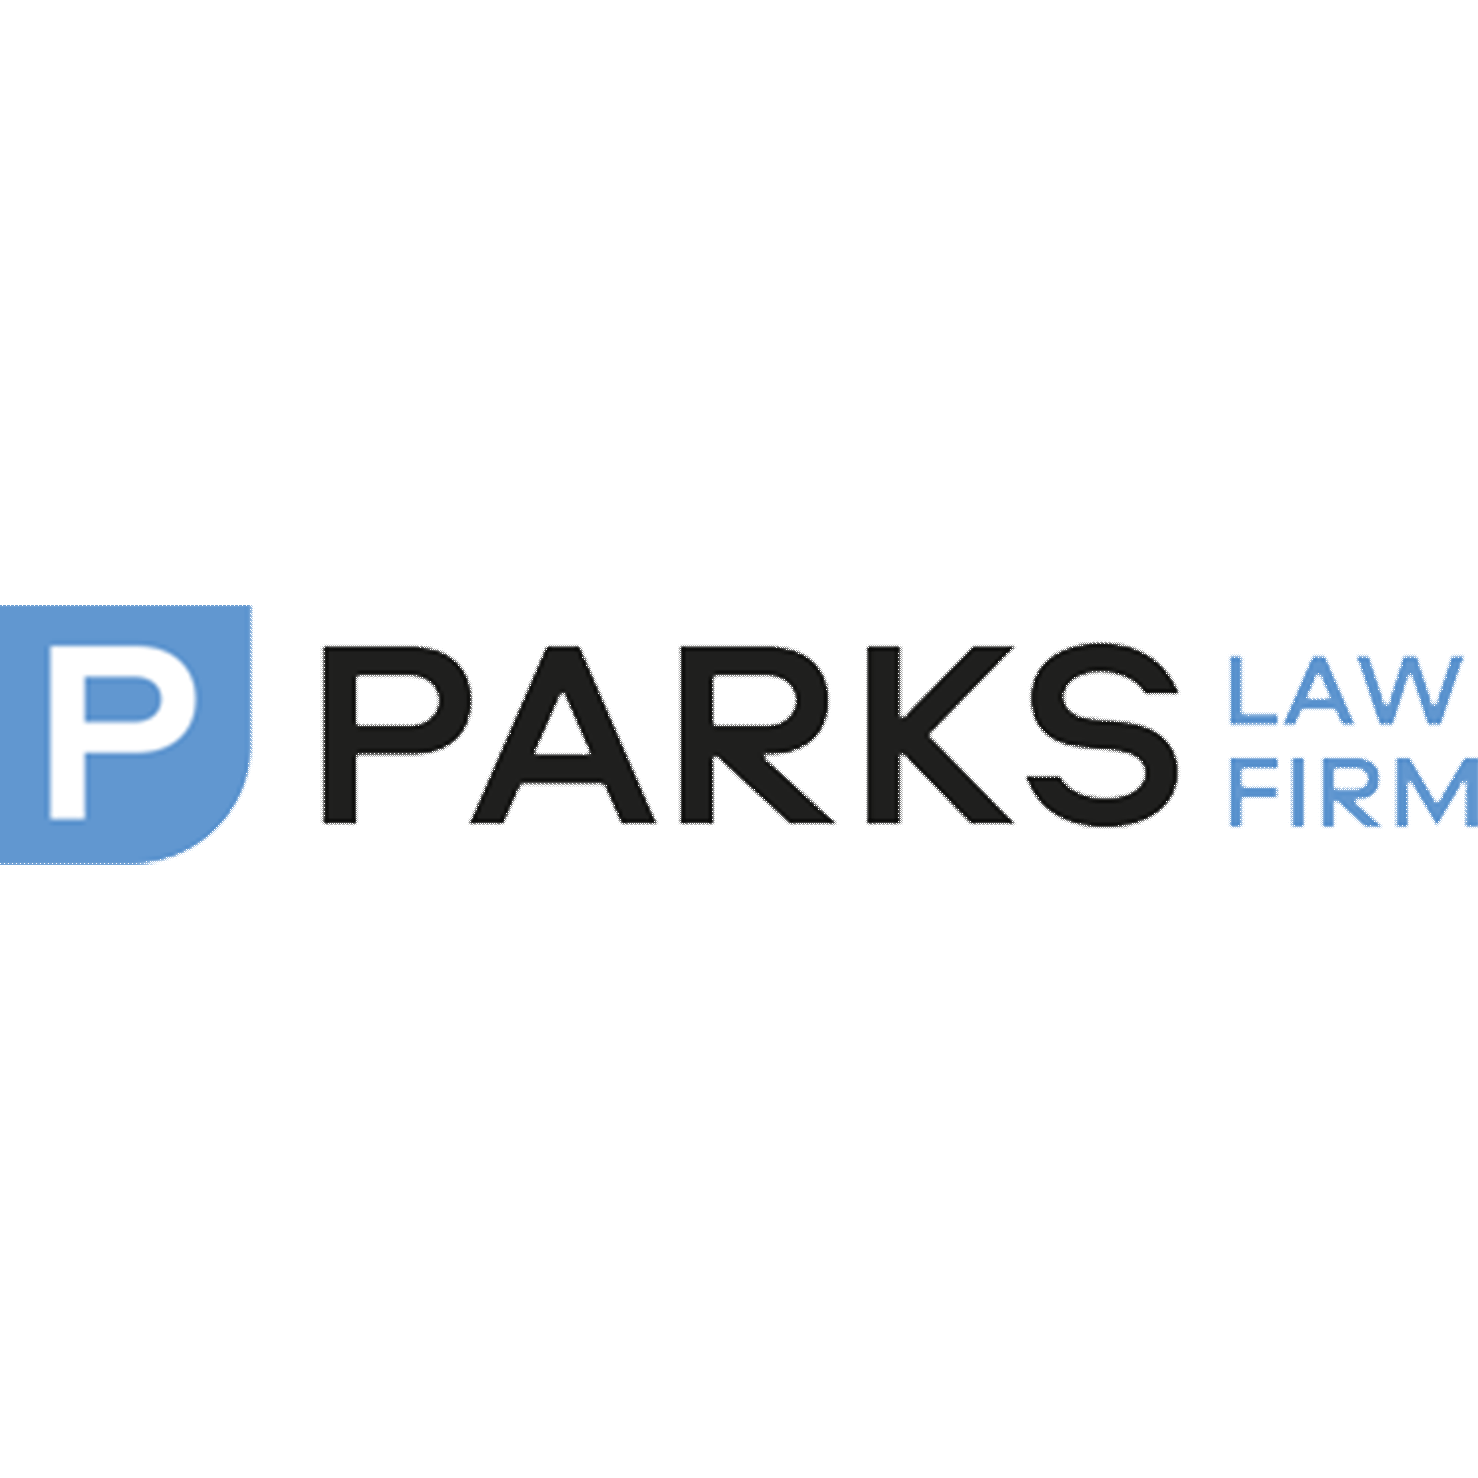 The Parks Law Firm - Grapevine, TX - Attorneys